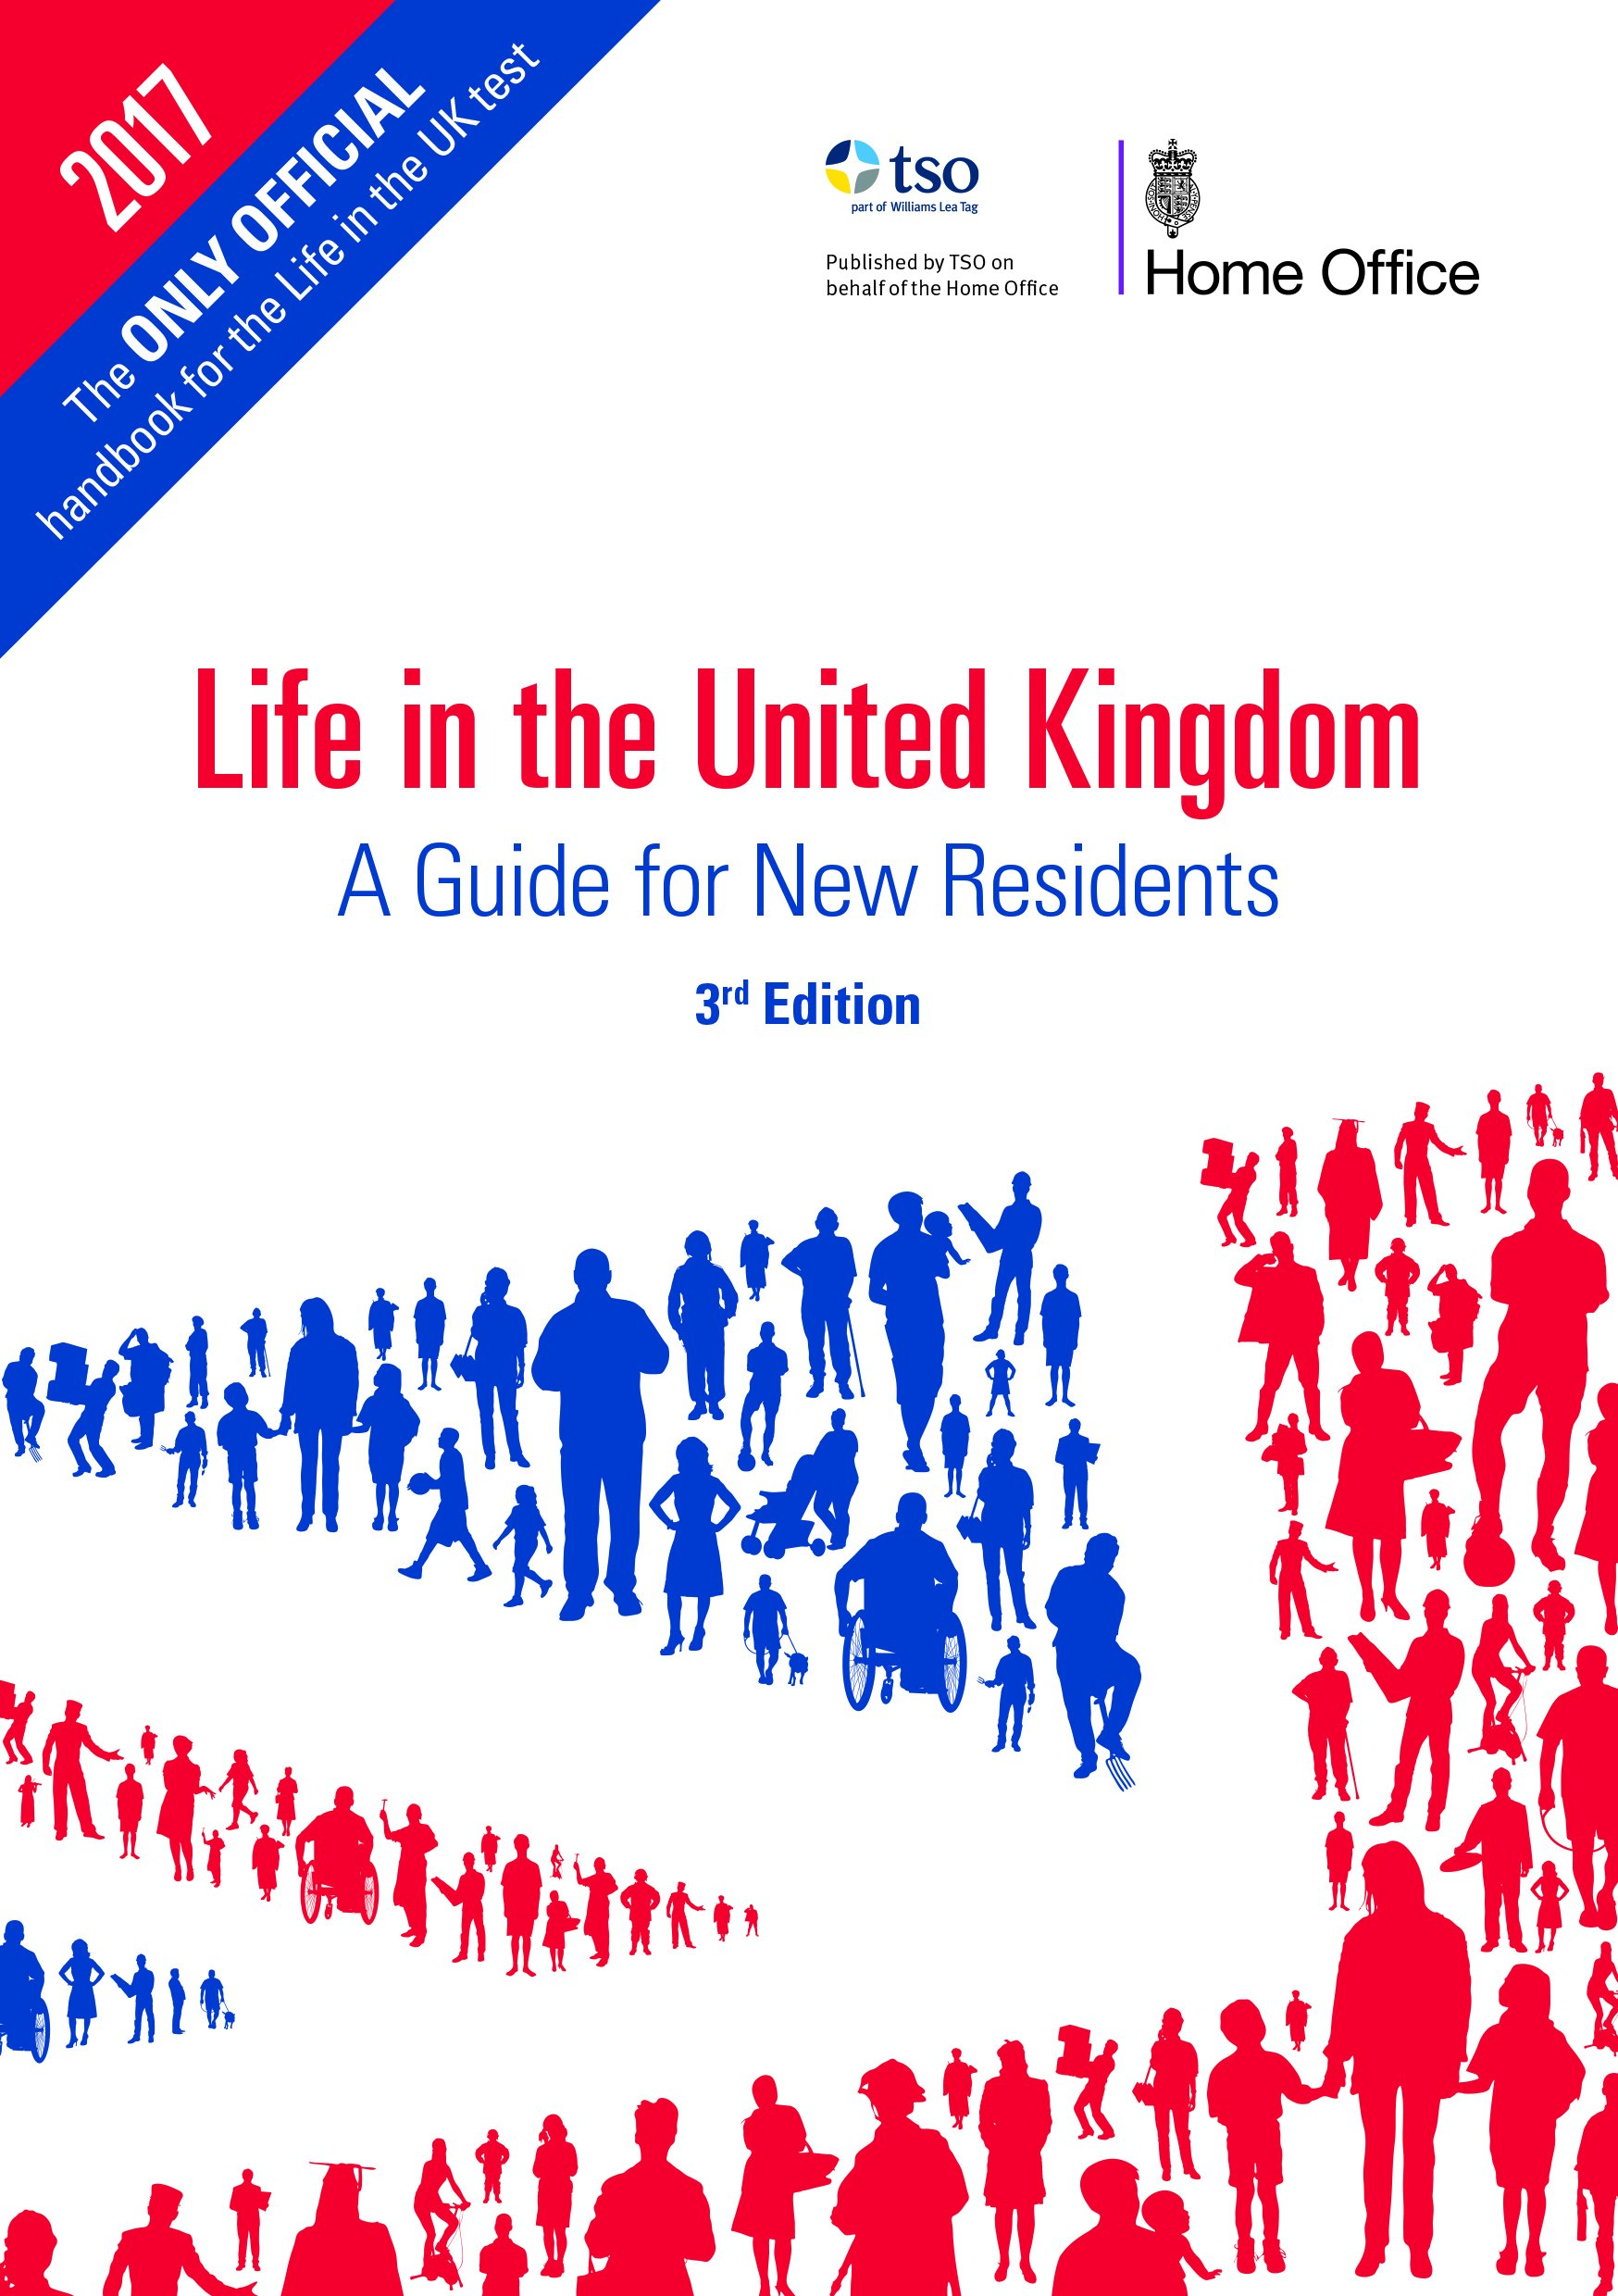 home office guide. life in the united kingdom a guide for new residents amazoncouk great britain home office 9780113413409 books d